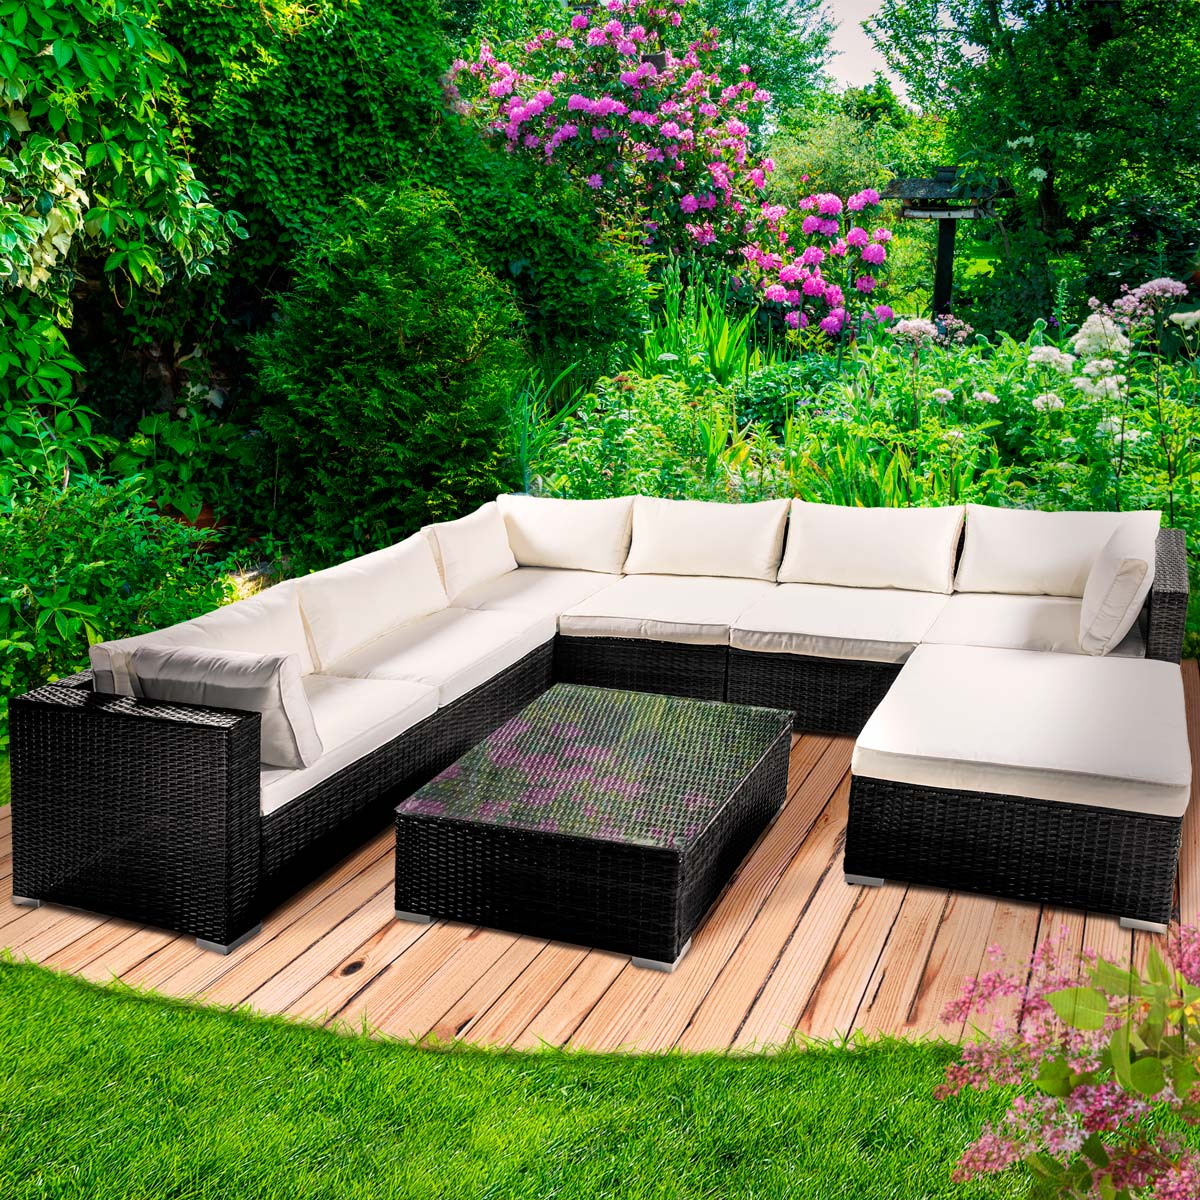 Outdoor Möbel Lounge Poly Rattan Gartenmöbel Lounge Möbel Sitzgarnitur